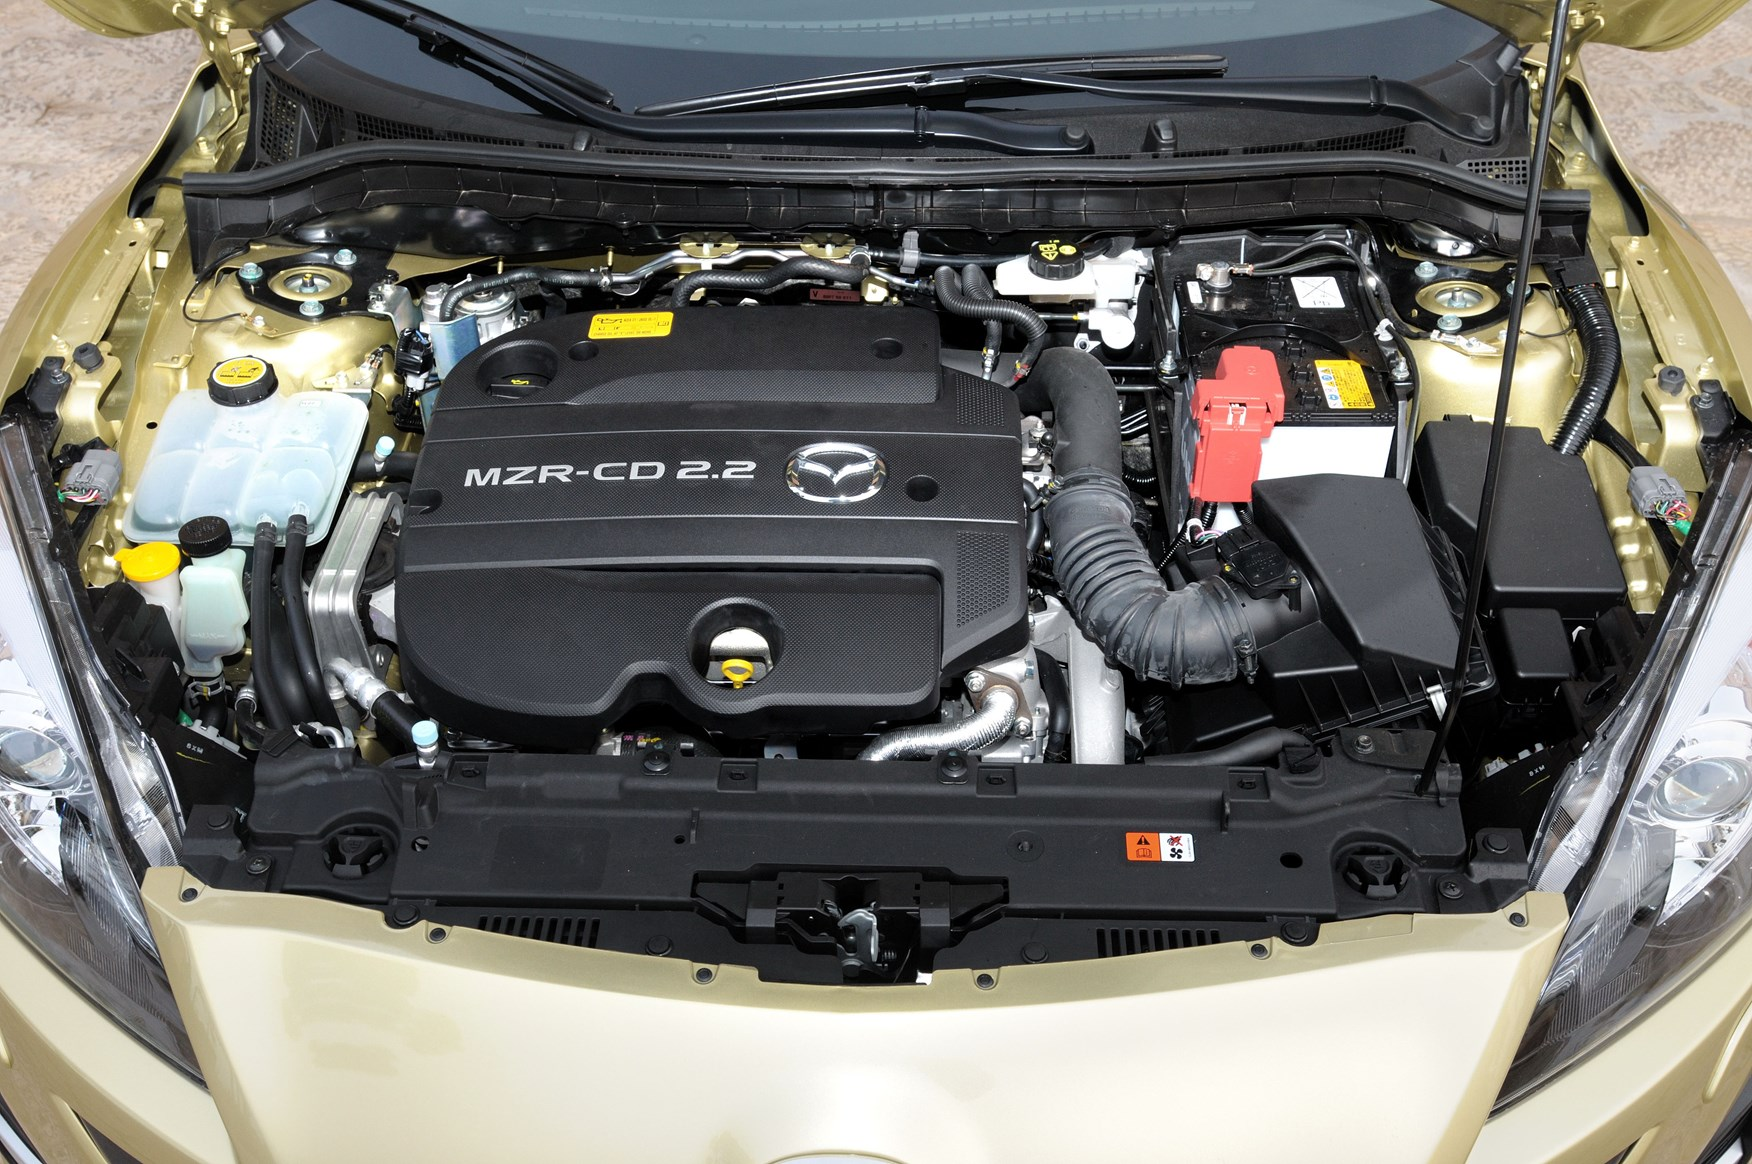 Used Mazda 3 Saloon (2009 - 2010) MPG | Parkers